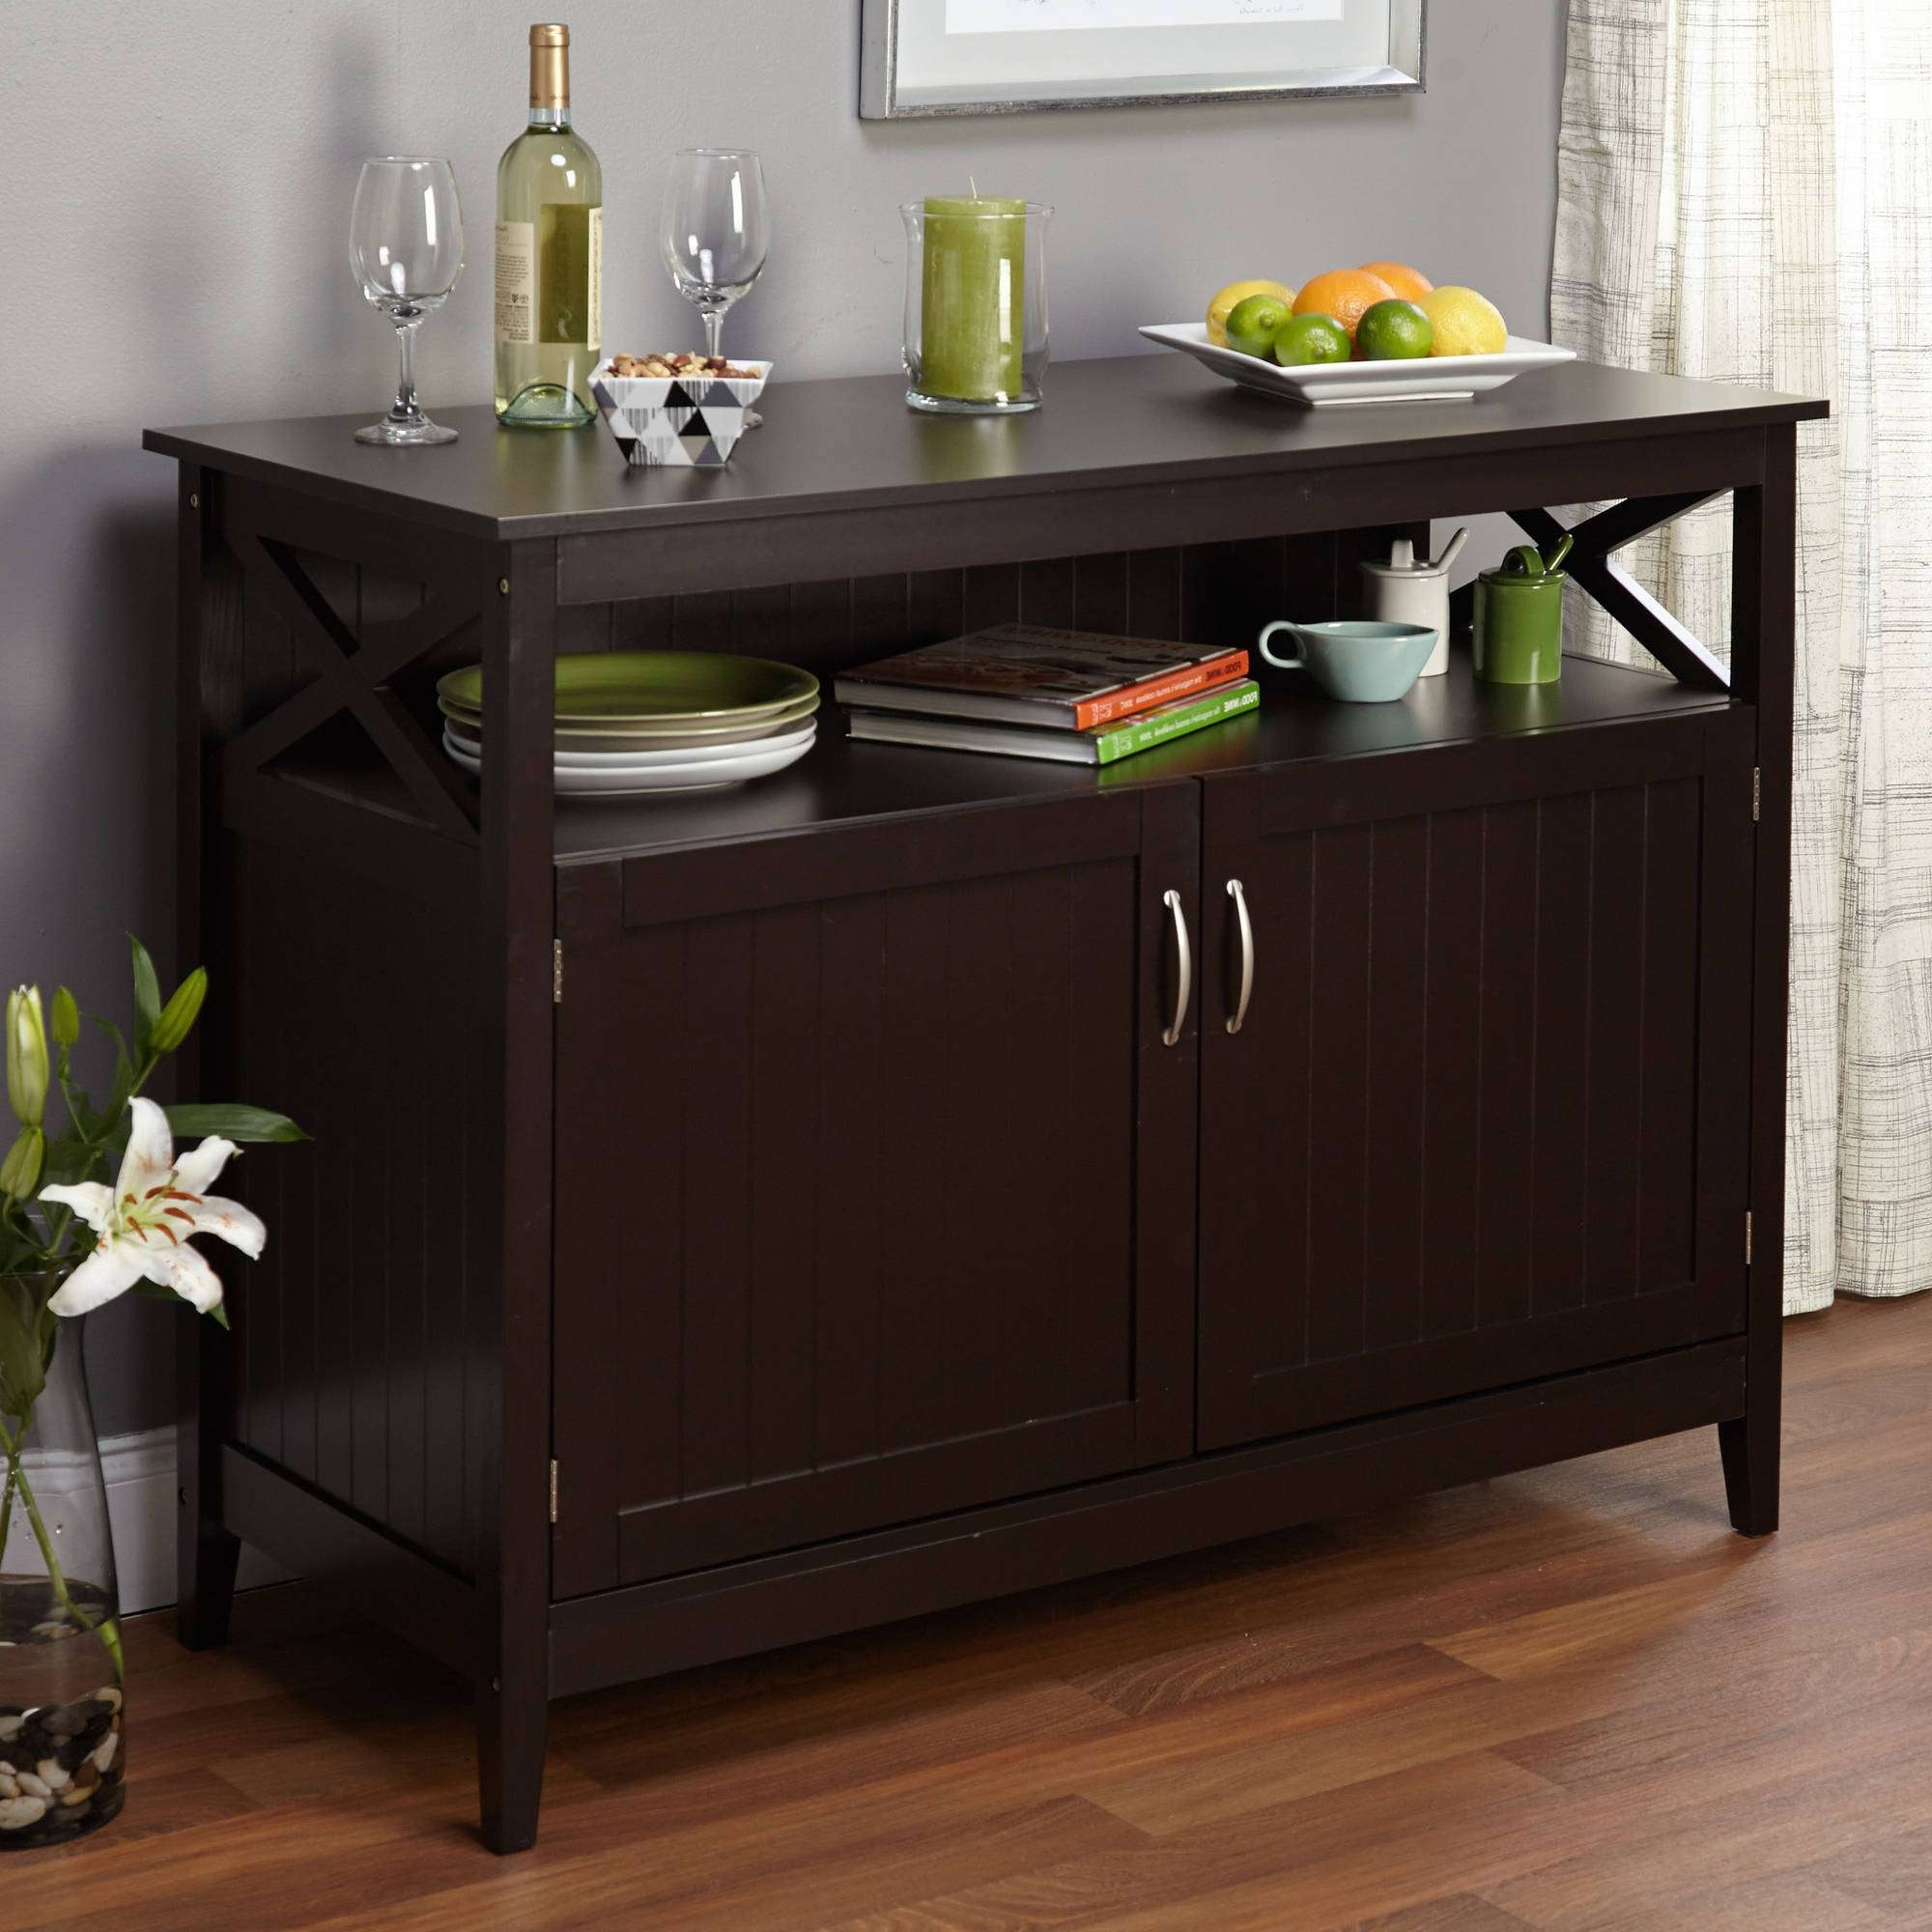 New Sideboard Buffet Server – Bjdgjy Inside Sideboards Buffet Tables (View 12 of 20)